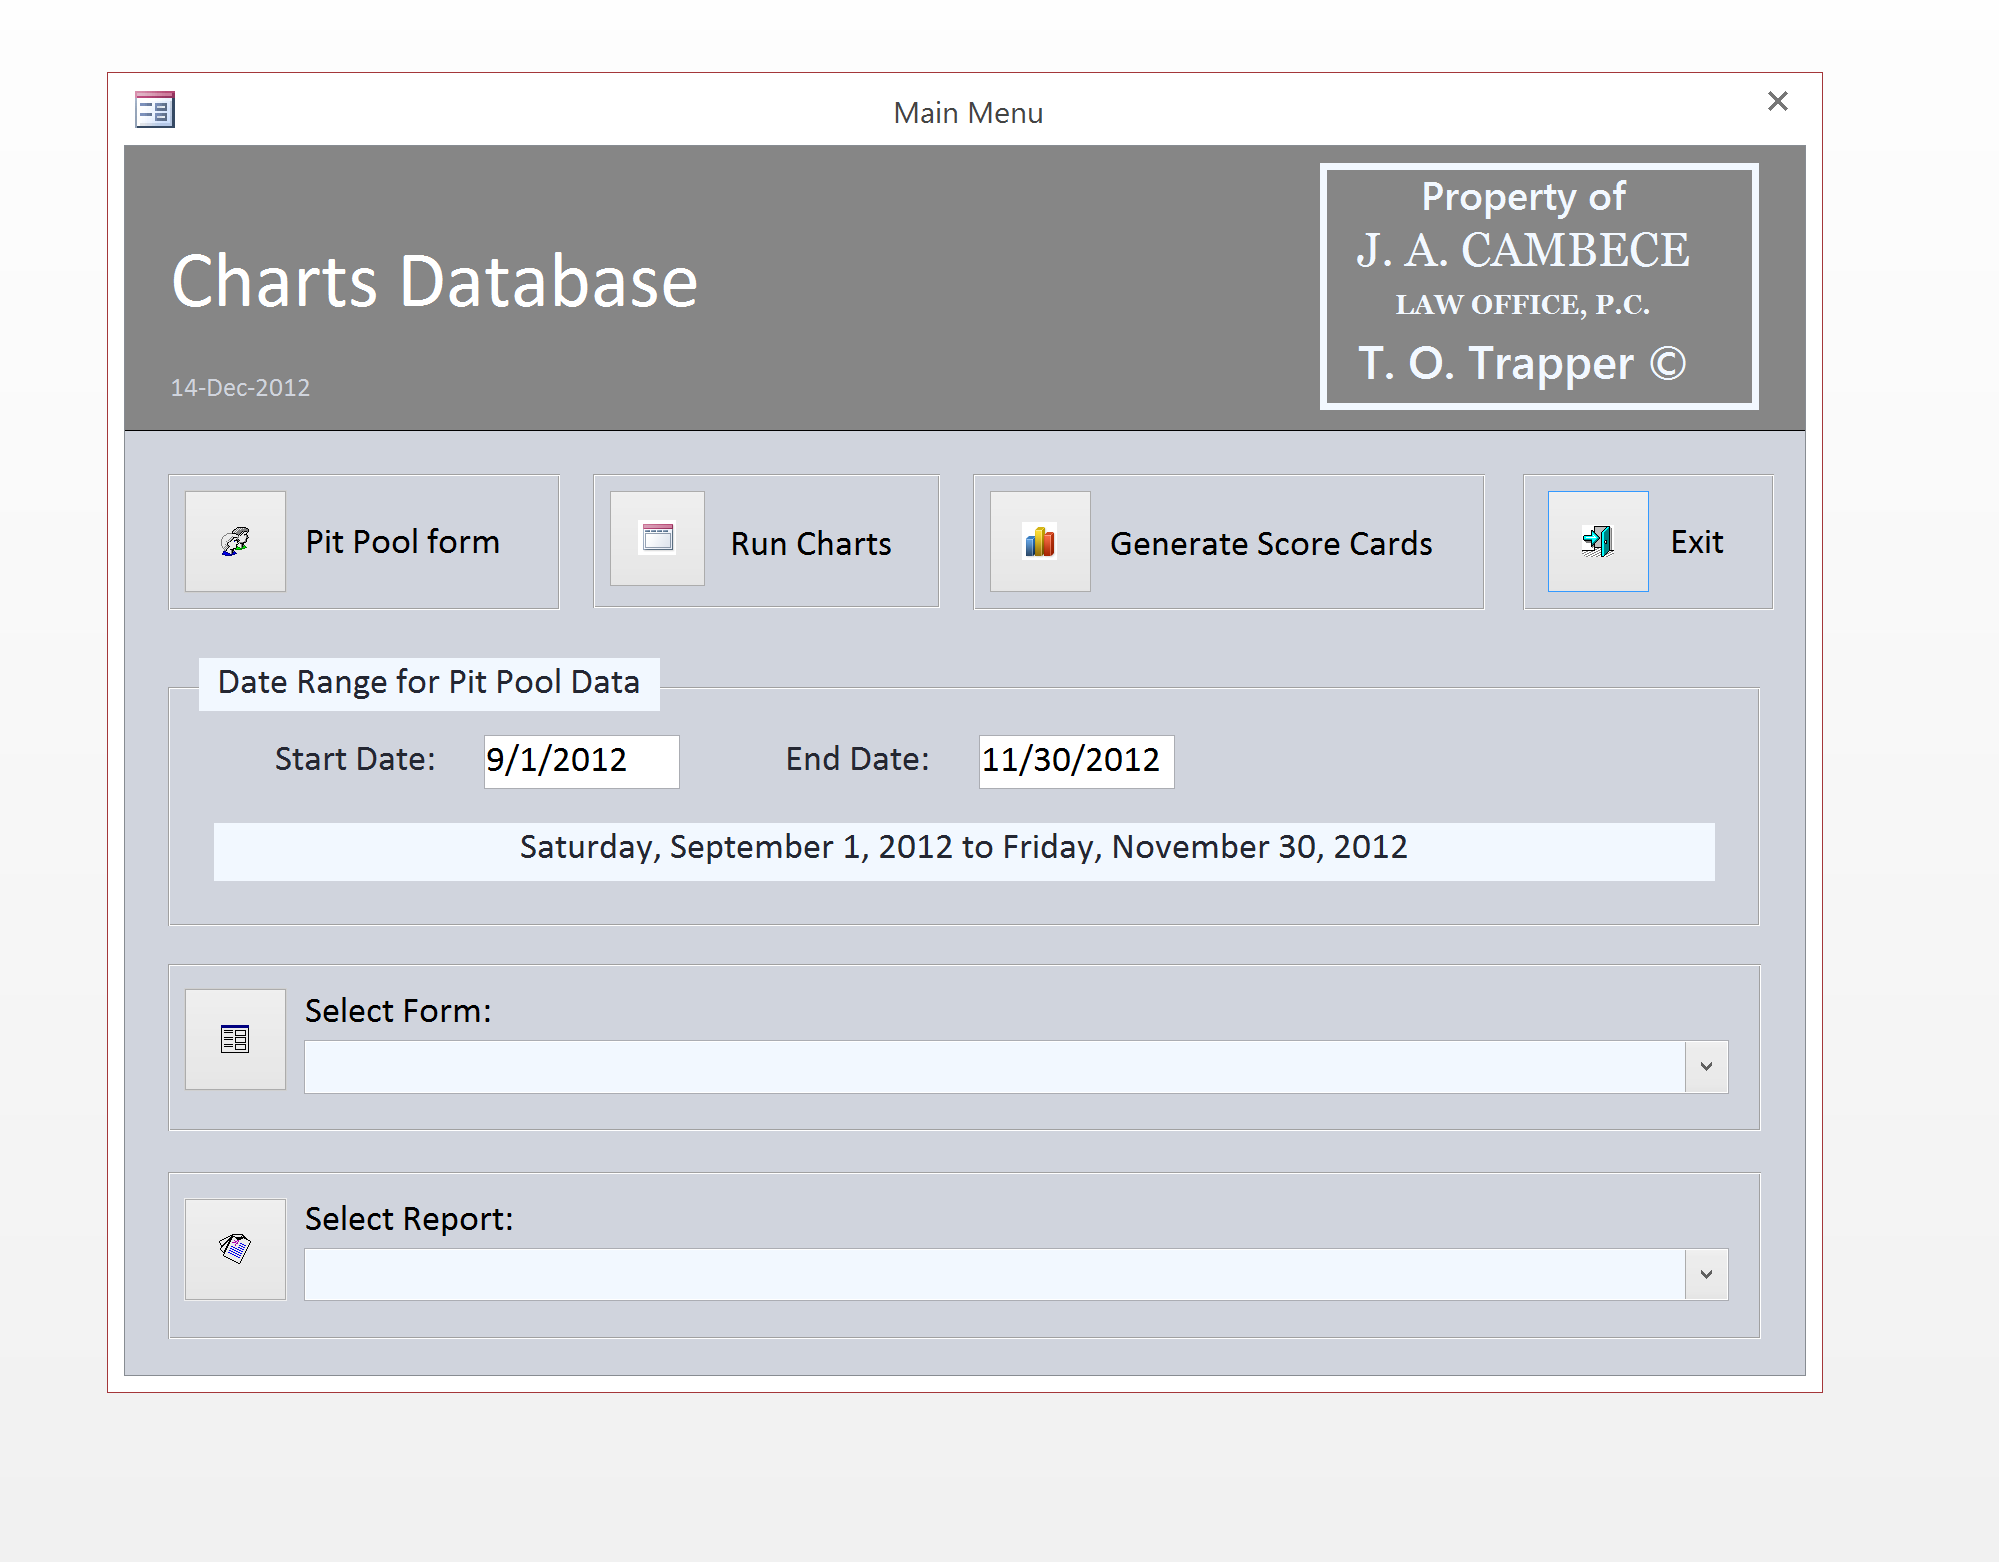 MS Access Forms interface creates a nice user experience.